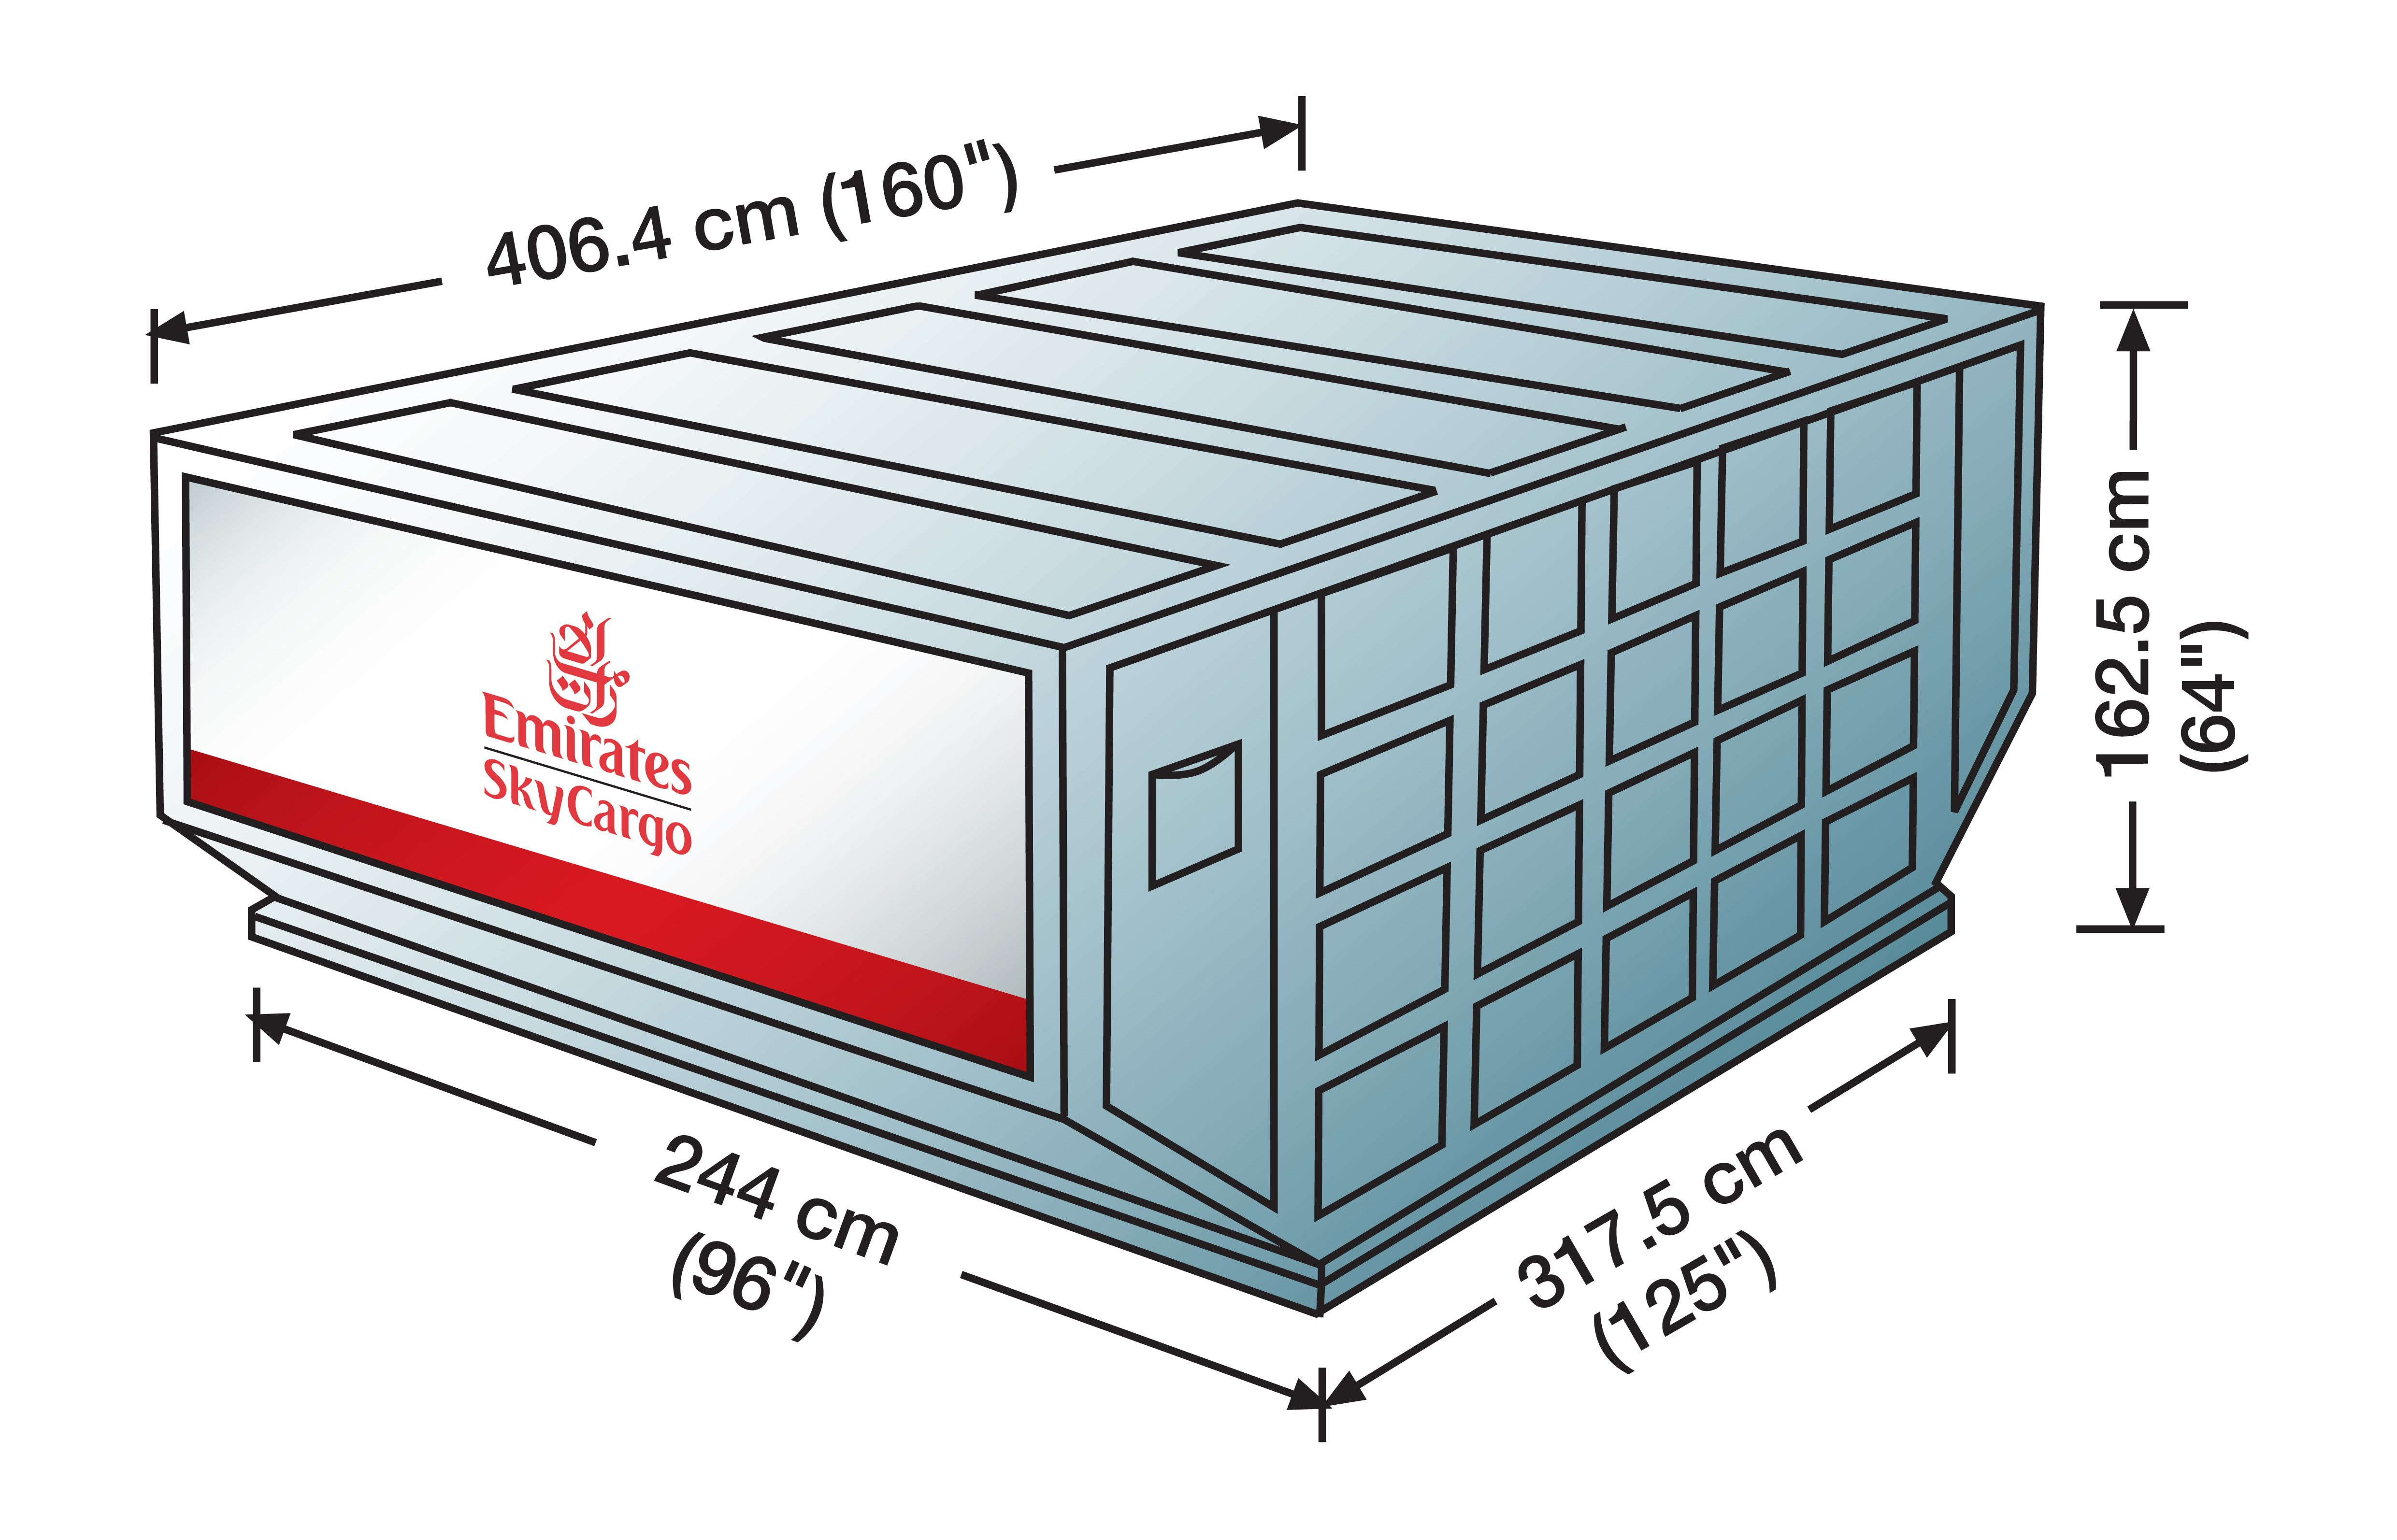 Ld36 Amf Contoured Container Volume 14 5 Cubic Metres Standard Tare Weight 275 Kgs Max Gross Weight 5 000 Kgs Air Cargo Outdoor Storage Box The Unit